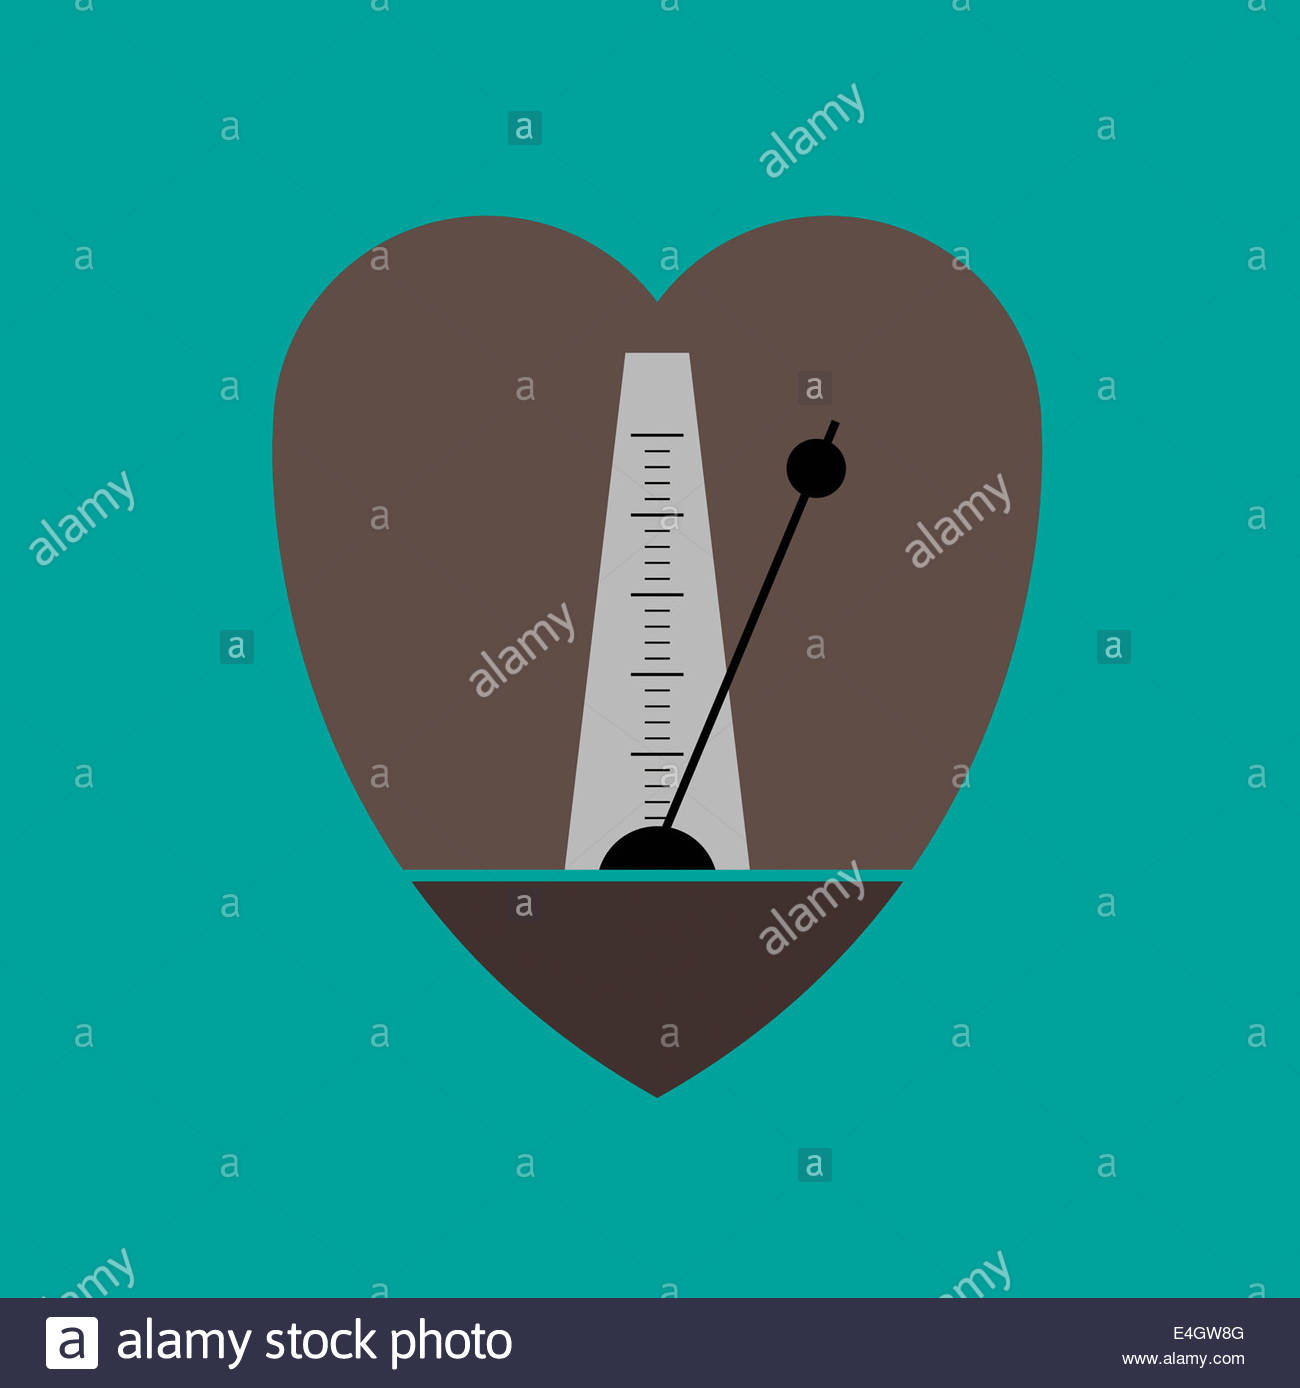 Metronome in heart shape - Stock Image